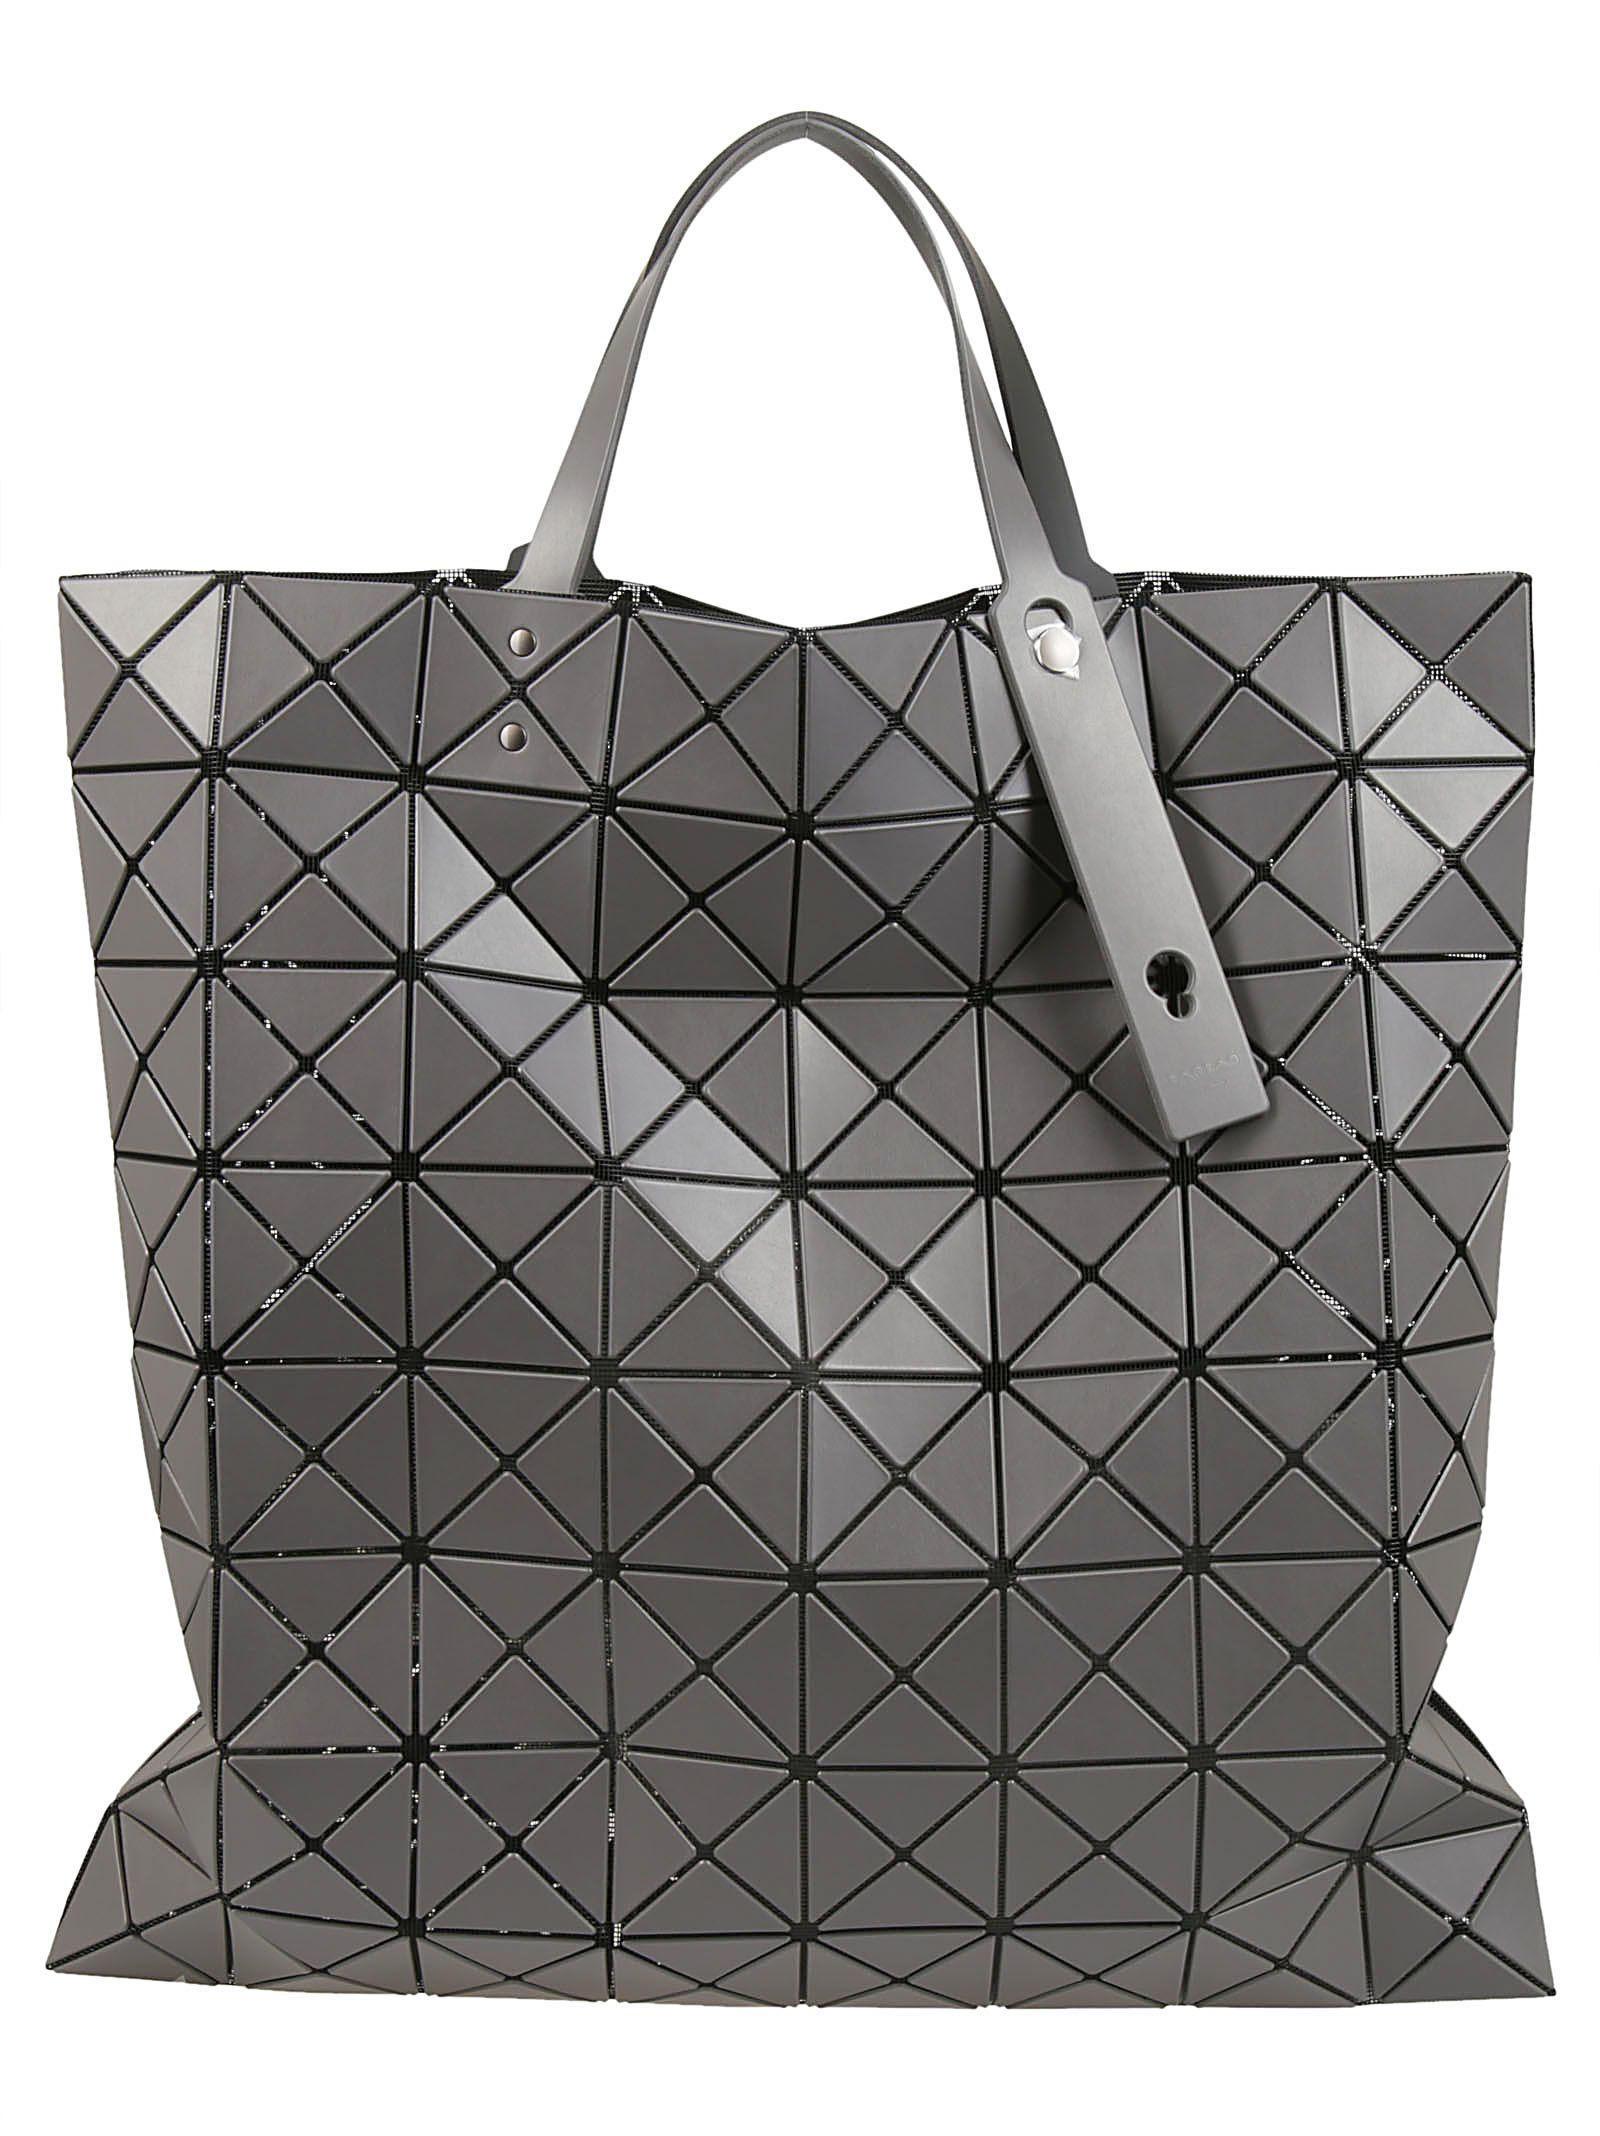 Bao Bao Issey Miyake Lucent Matte Tote In Charchoal  2ce8547ac6d79